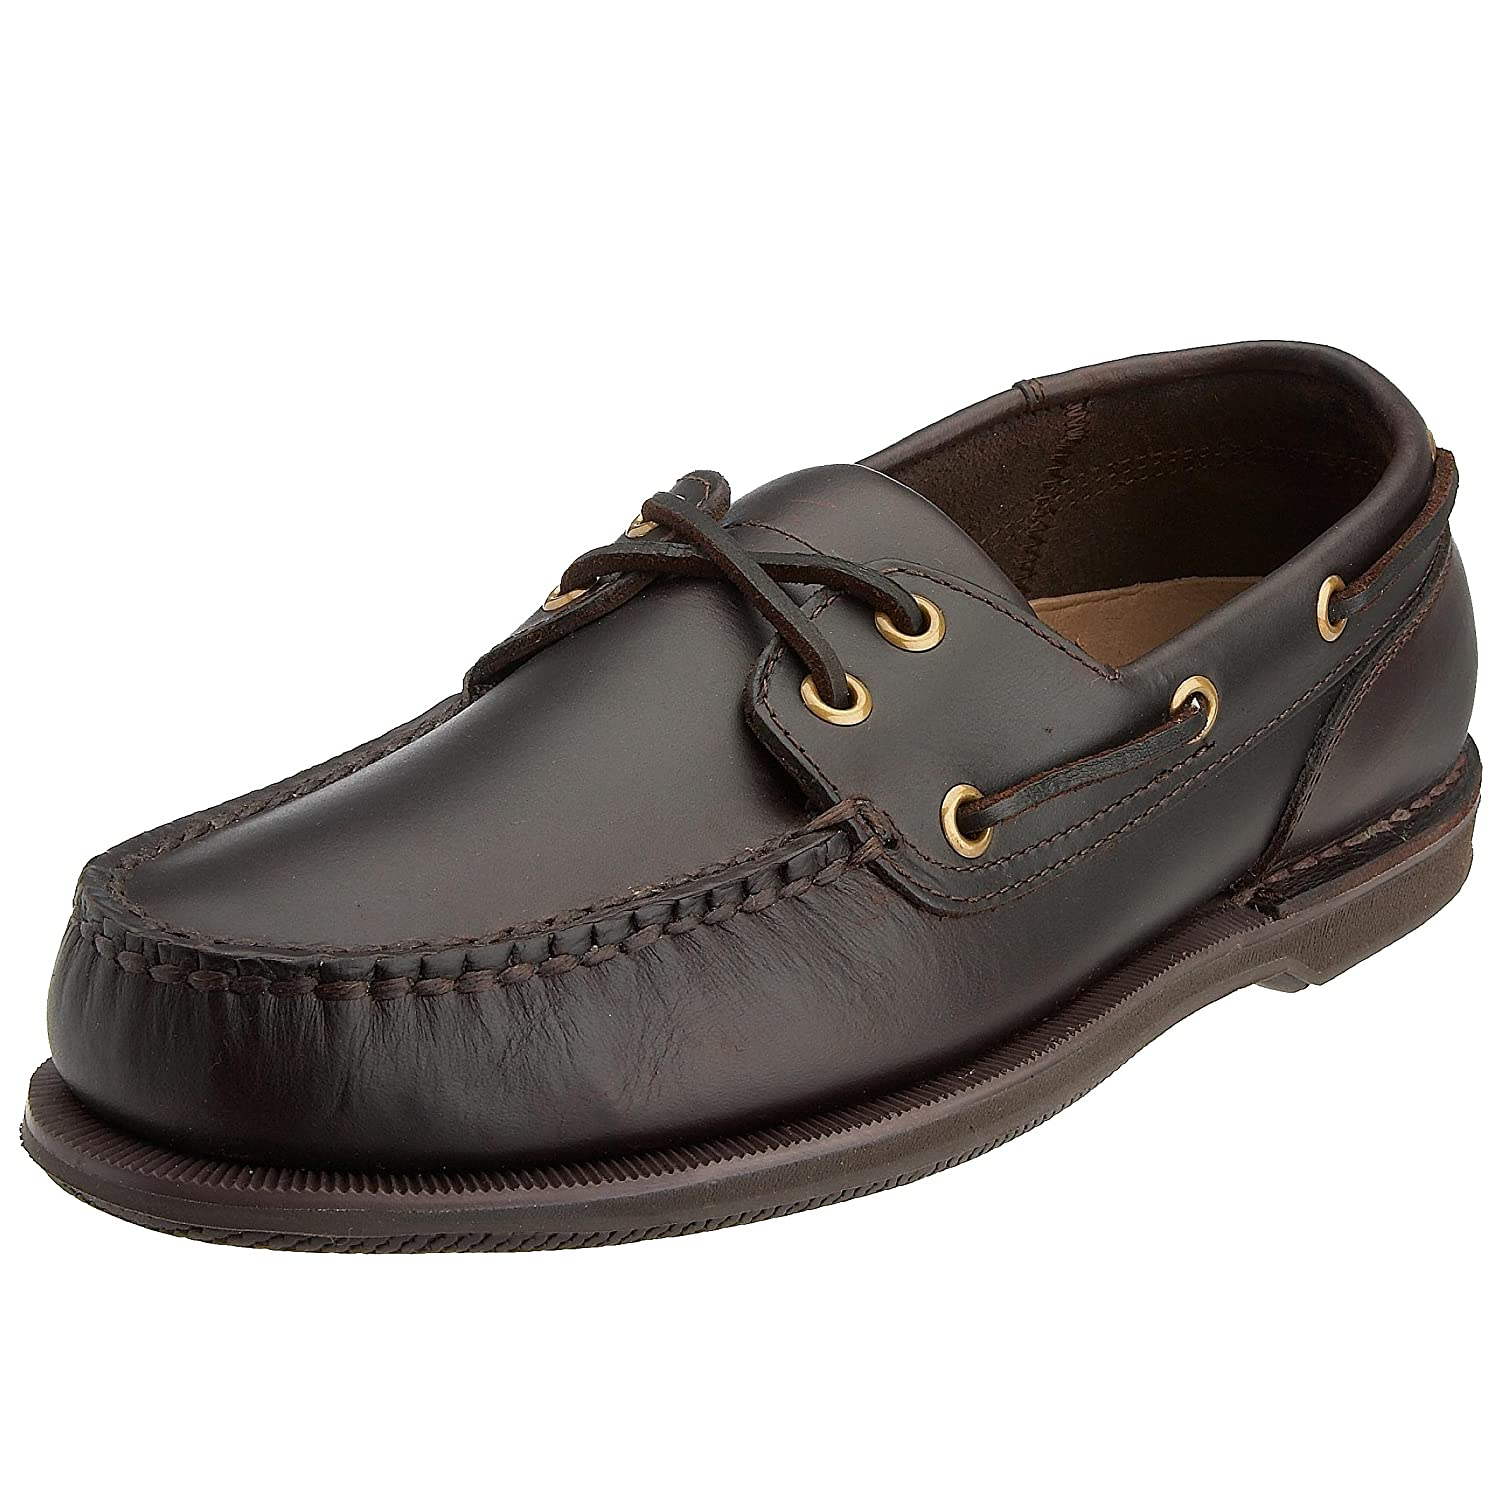 Rockport Ports of Call Perth K54692  Herren Bootsschuhe  Braun (DK BROWN PULL UP)  EU 44 (UK 9.5) Braun (Dk Brown Pull Up)